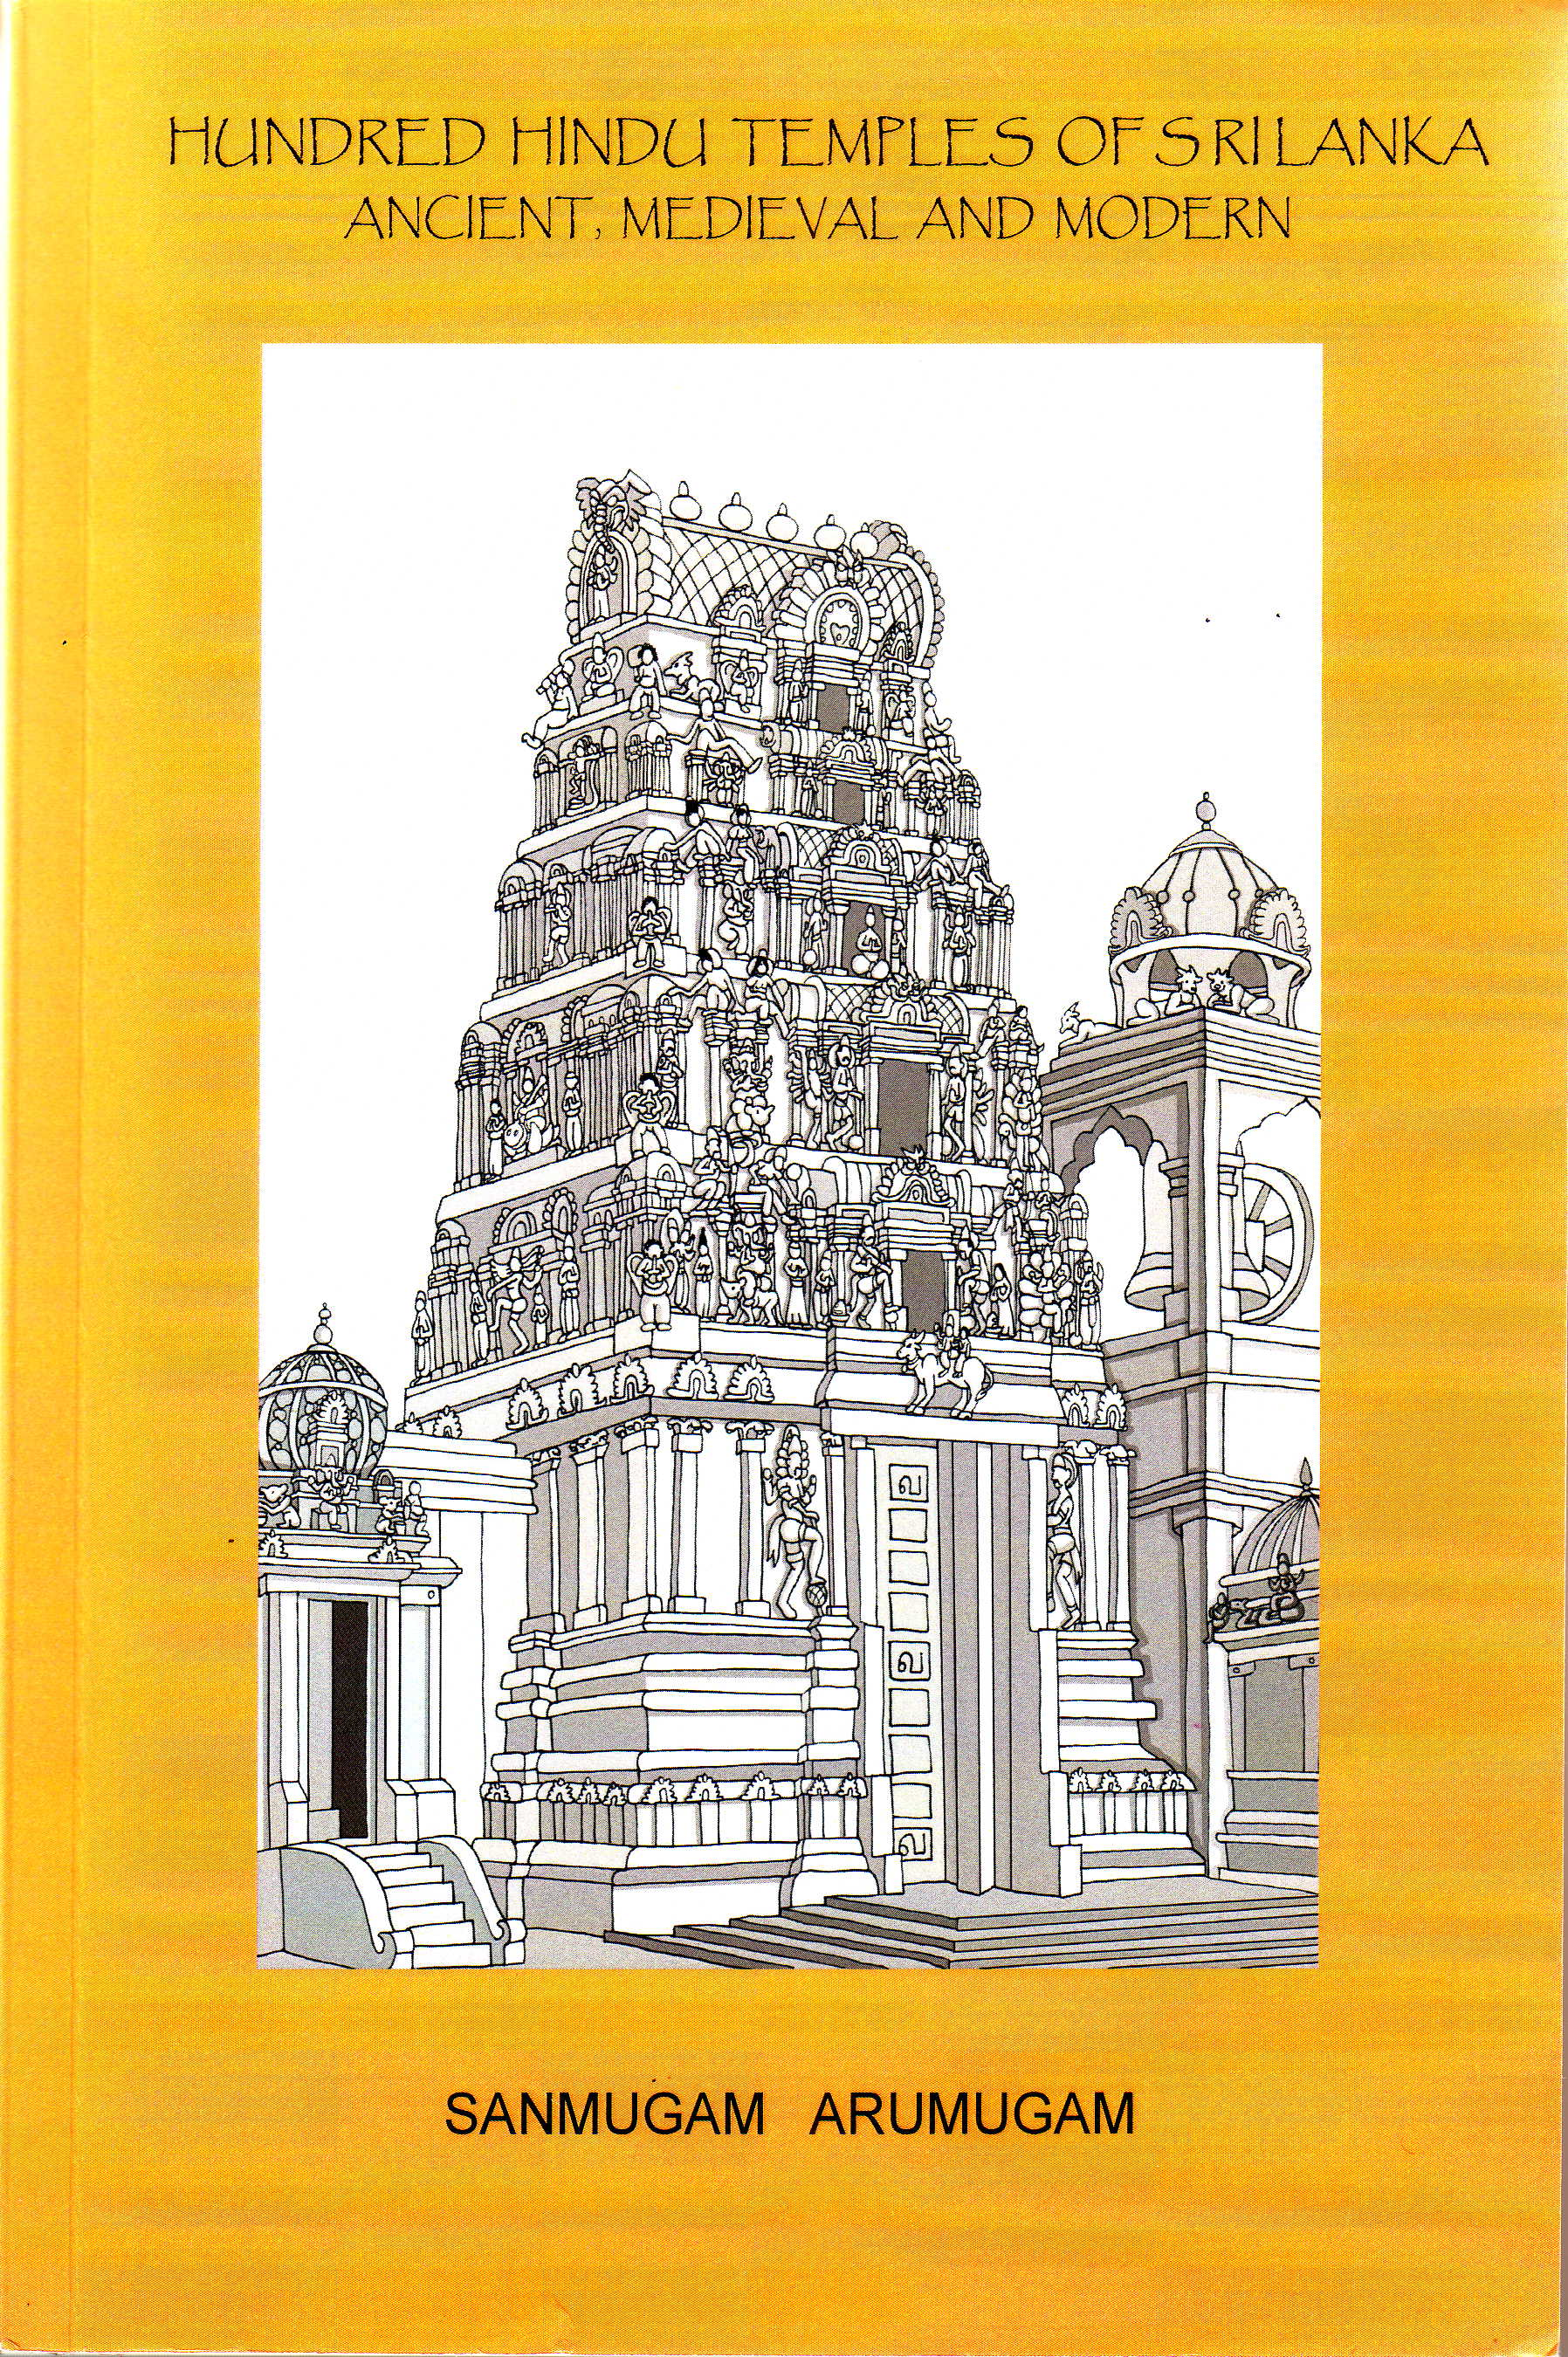 Hundred Hindu Temples of Sri Lanka front cover